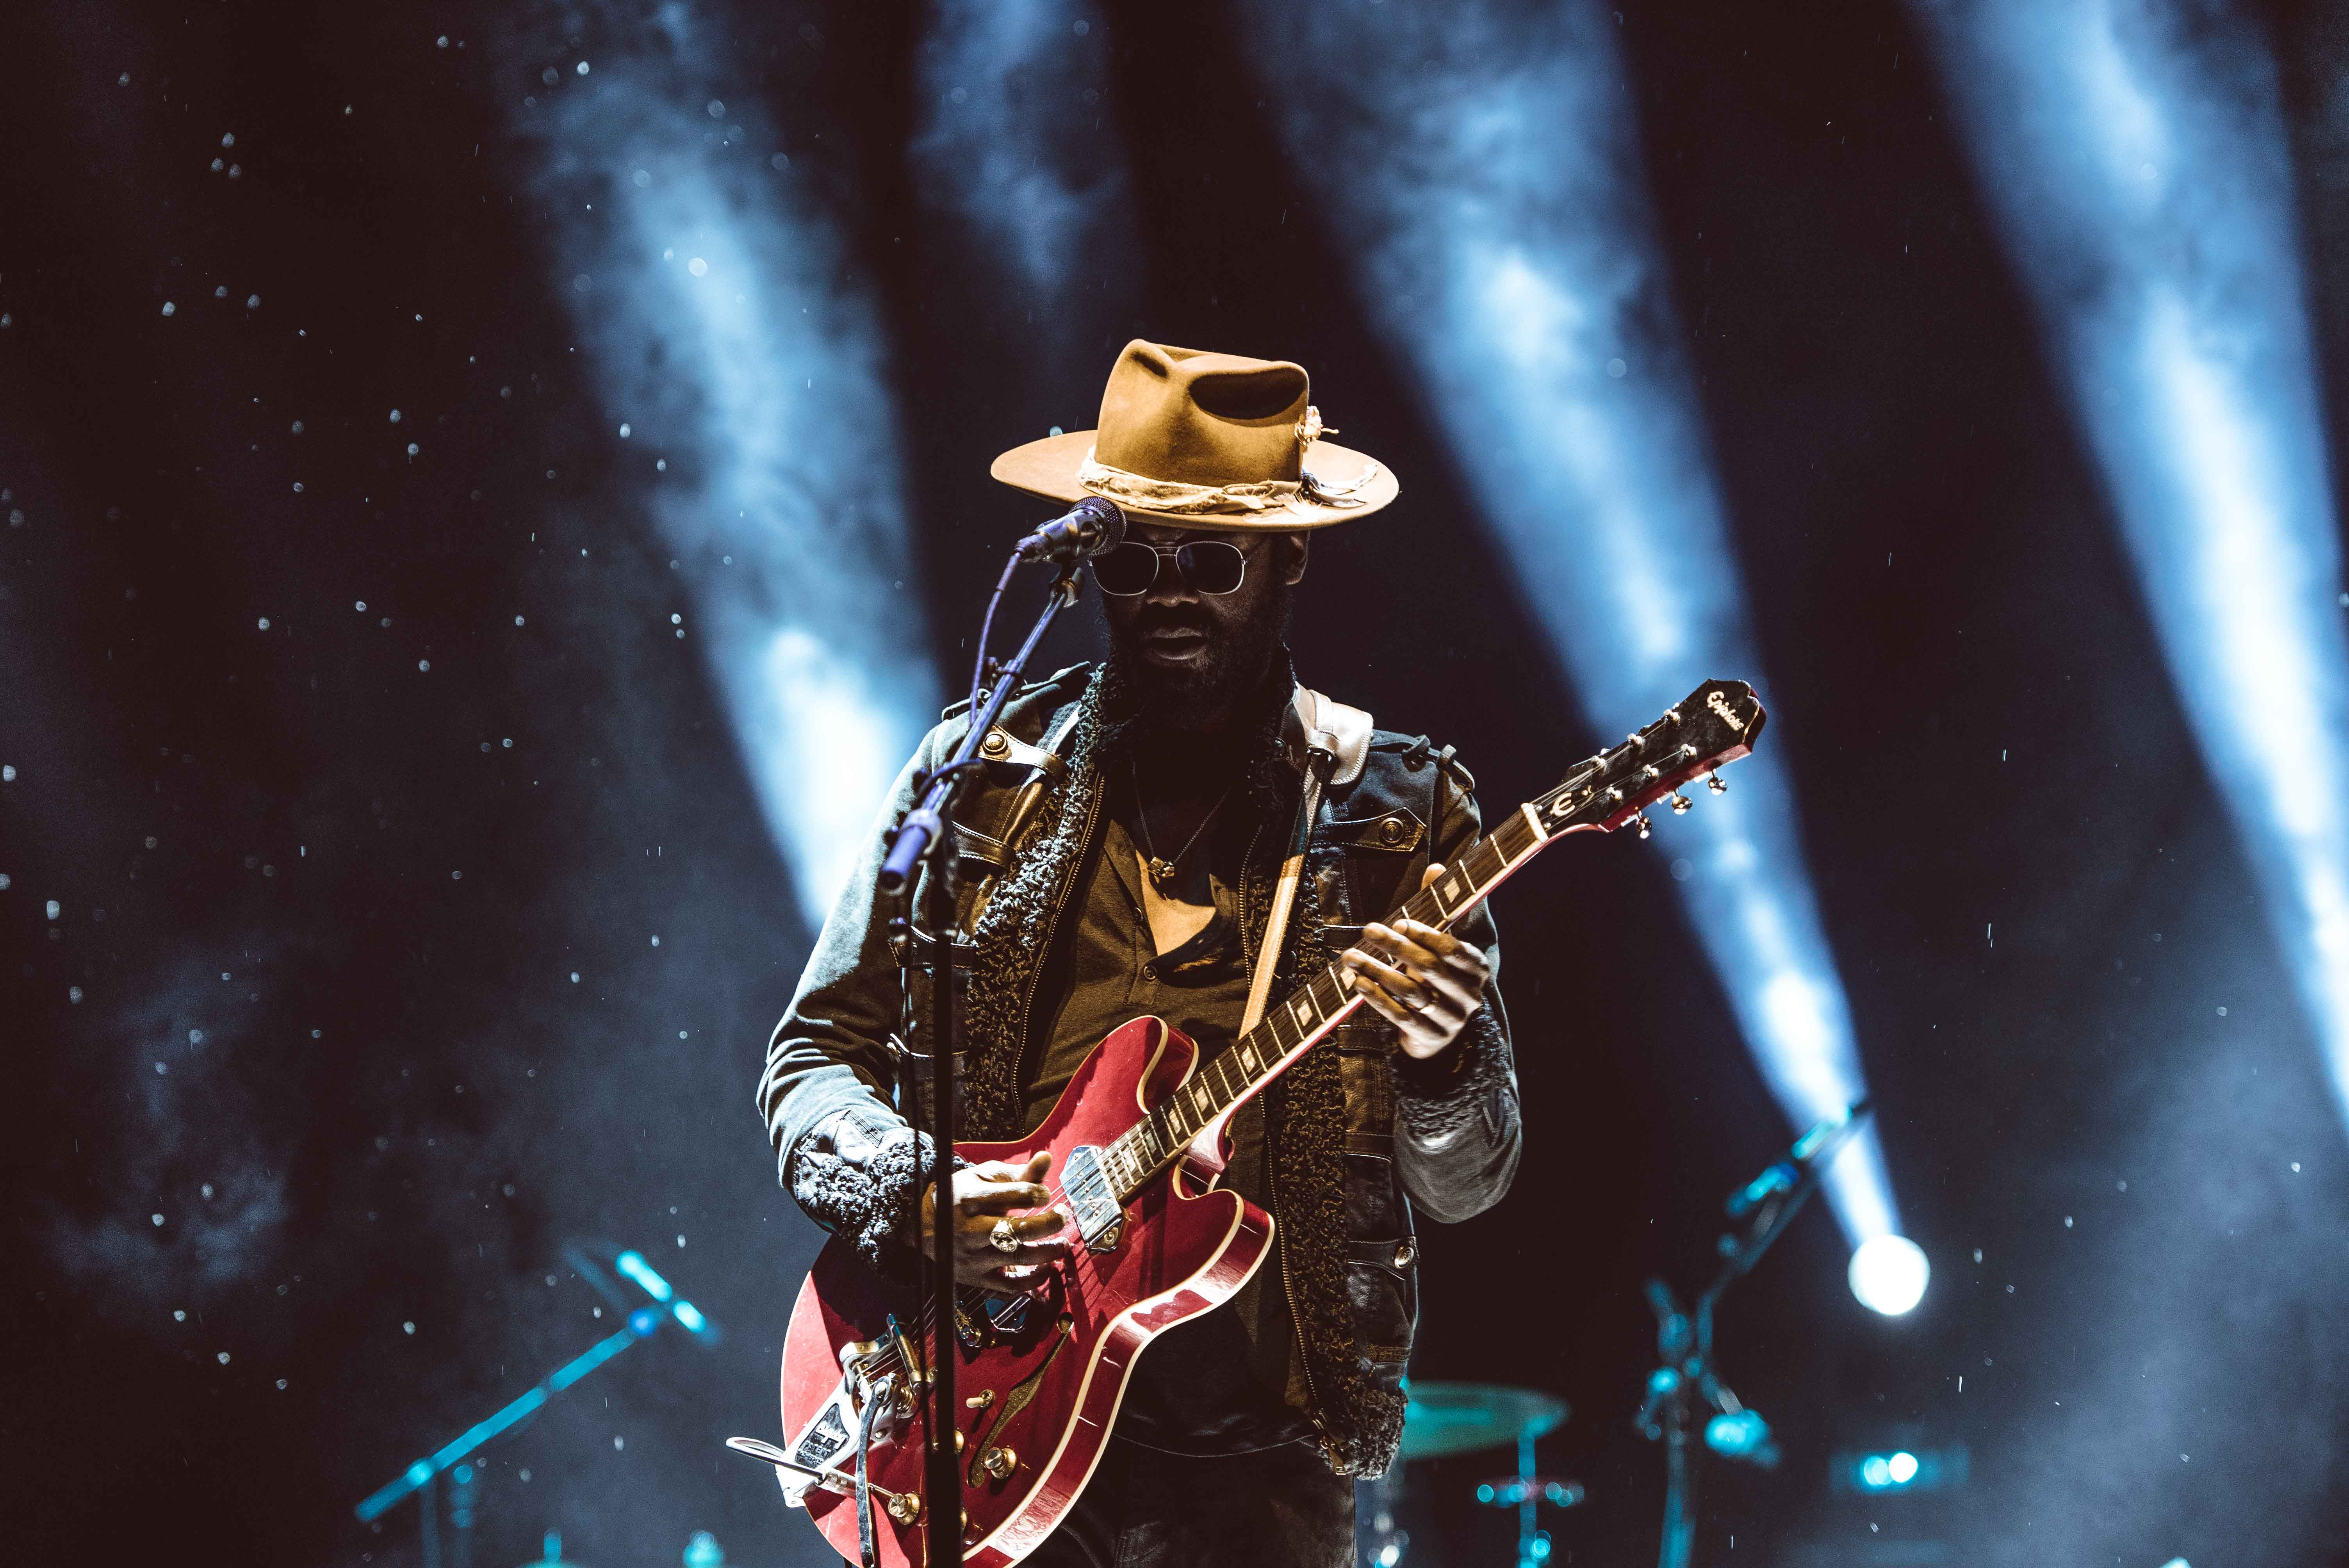 Think No Think, Valerie June, Gary Clark Jr, Ellie Herring, Alden Bonecutter, 303 Magazine, 303 music, red rocks, come together, astral plane, don't owe you a thang, Next Door Neighbor Blues, When My Train Pulls In, our love, if trouble was money